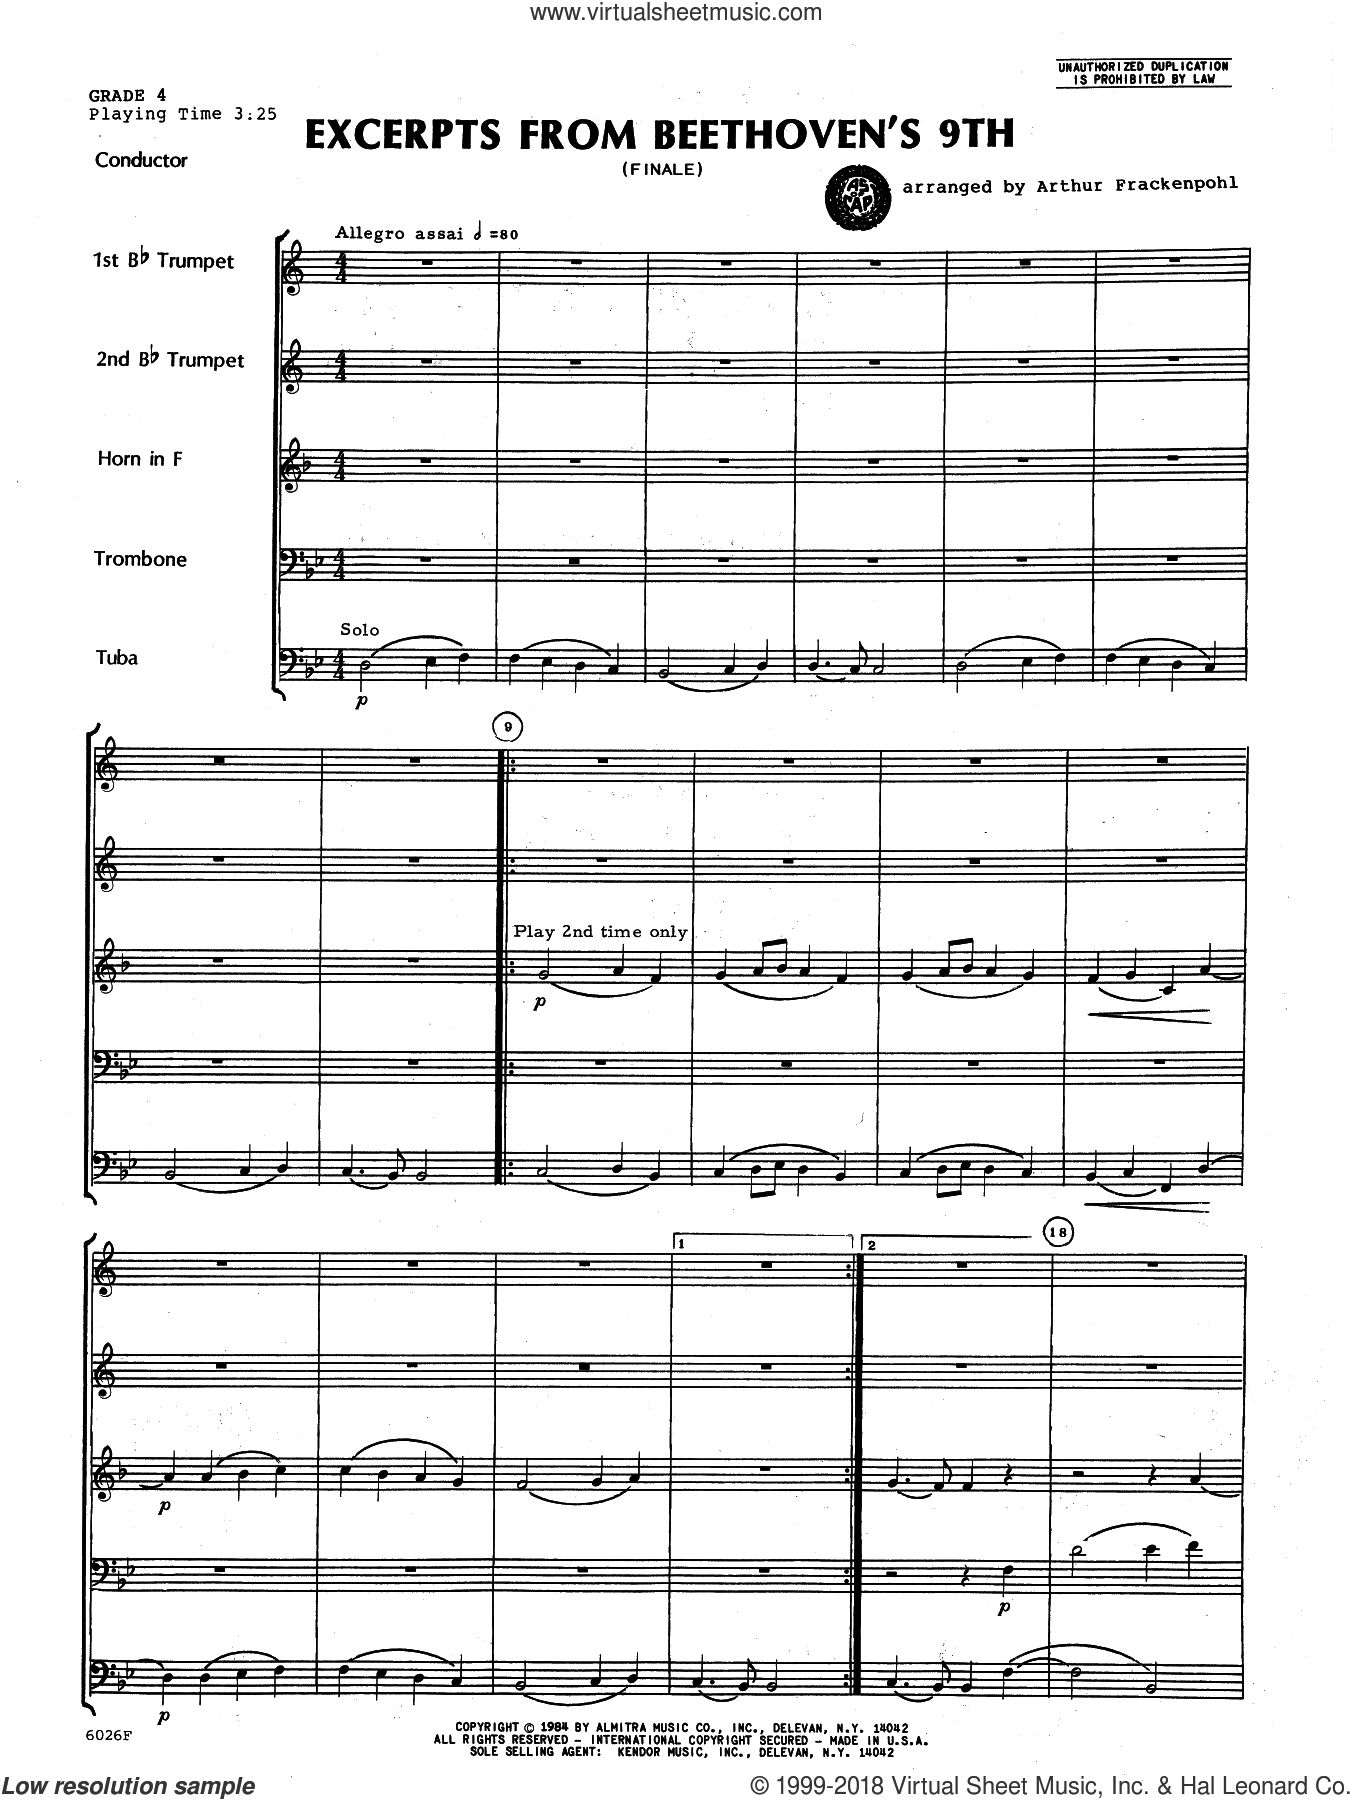 Excerpts From Beethoven's 9th (COMPLETE) sheet music for brass quintet by Ludwig van Beethoven and Arthur Frackenpohl, classical score, intermediate skill level